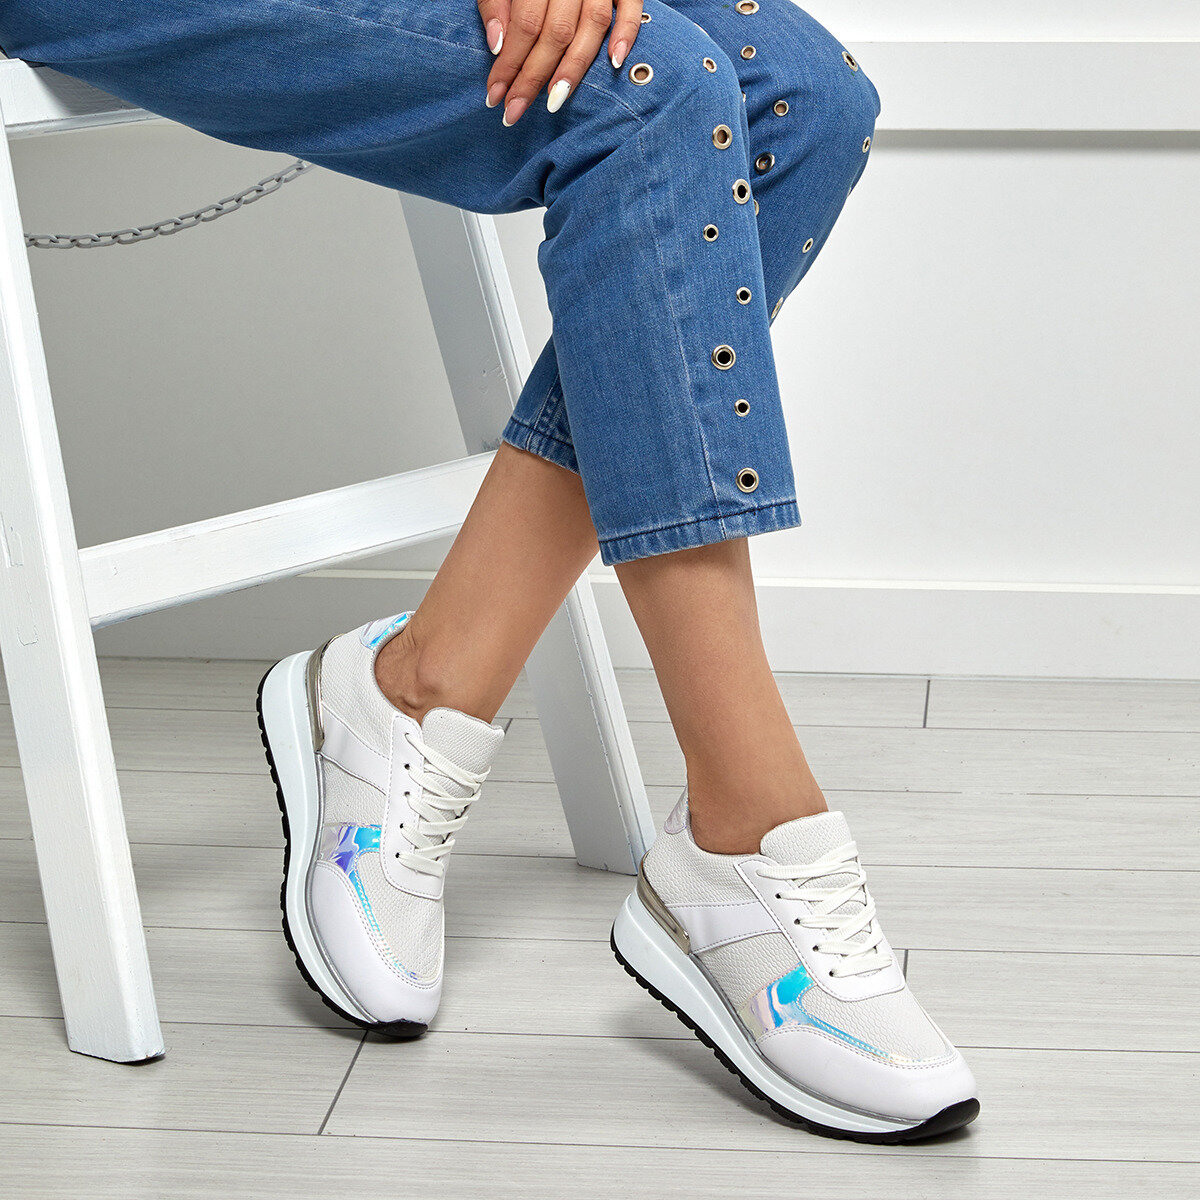 FLO 20S-343 White Women 'S Sneaker Shoes BUTIGO